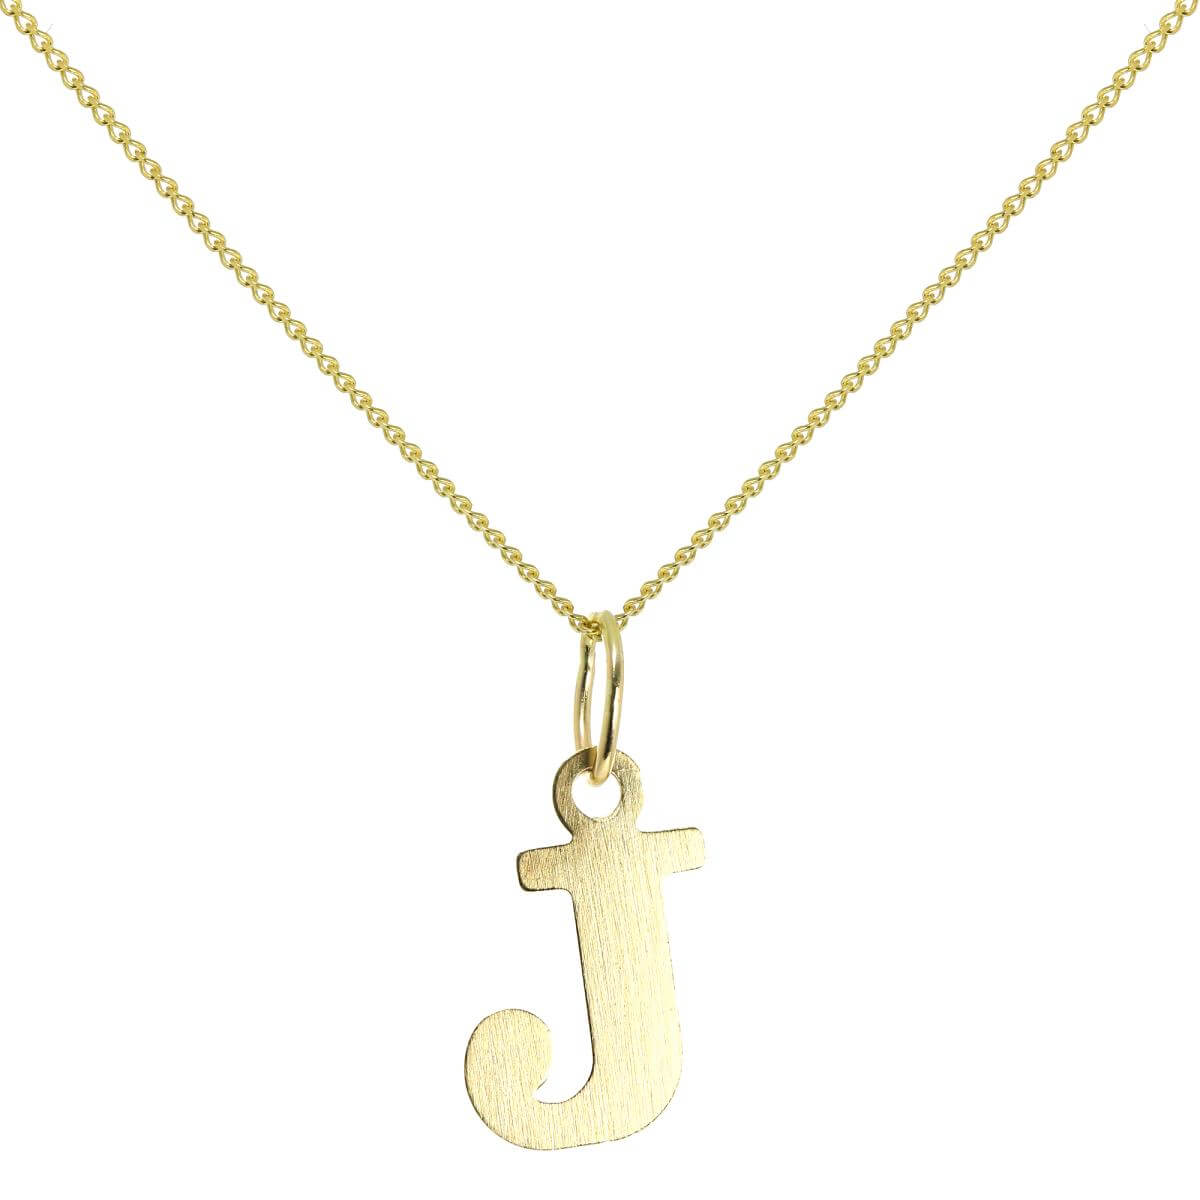 Lightweight 9ct Gold Initial Letter J Charm - 18 Inches